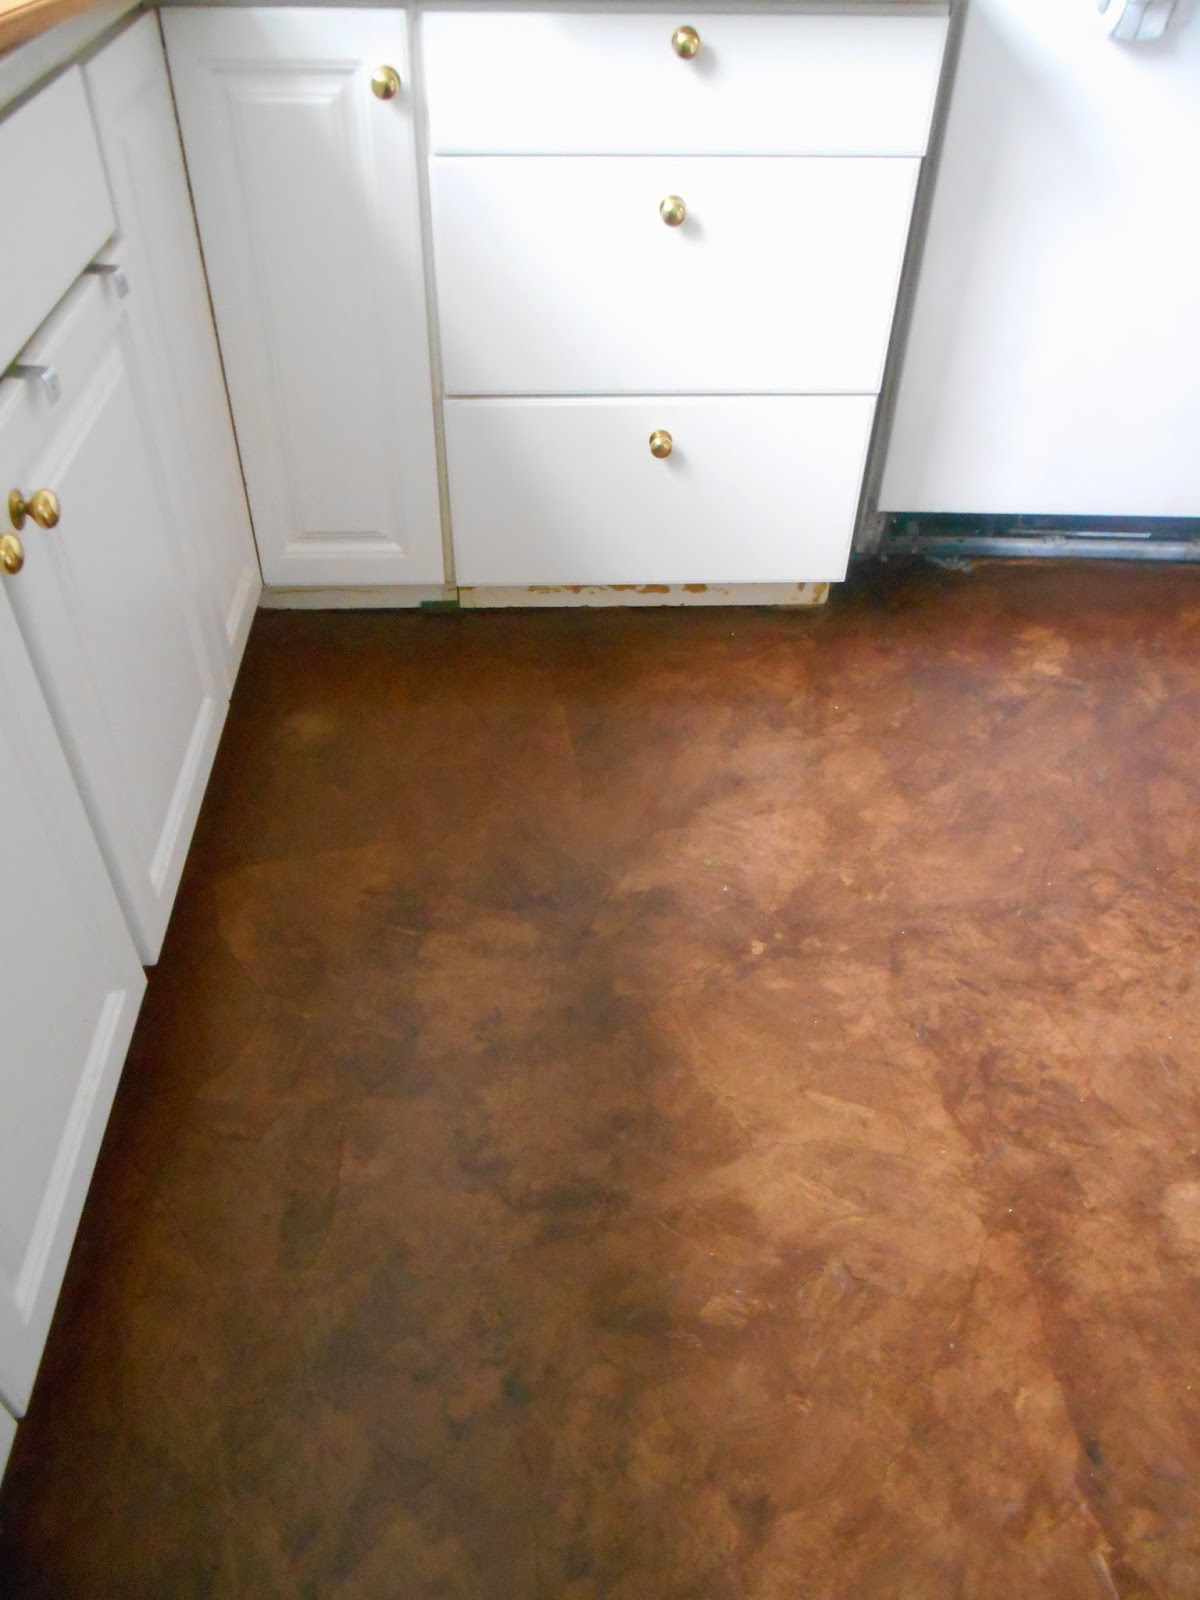 Living designs a paper bag floor over asbestos linoleum a paper bag floor over asbestos linoleum dailygadgetfo Images